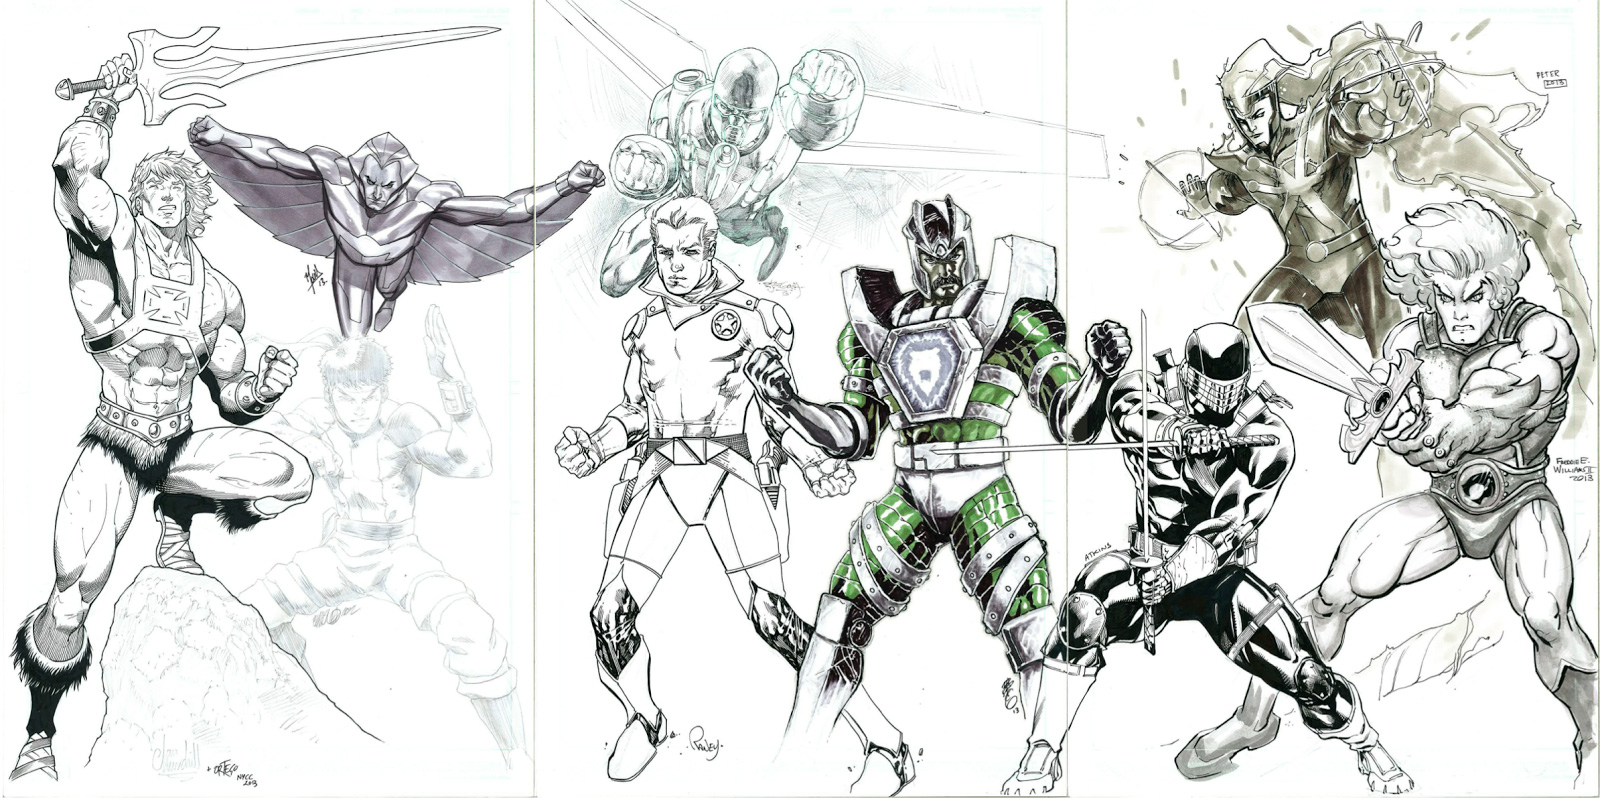 1980s Cartoon Jam Sketch with He-Man from Masters of the Unvierse, Snake Eyes from G.I. Joe, Lion-O from Thundercats, Galaxy Rangers, Silverhawks, Centurions, Visionaries, Firestorm from Super Friends, and Bionic Six